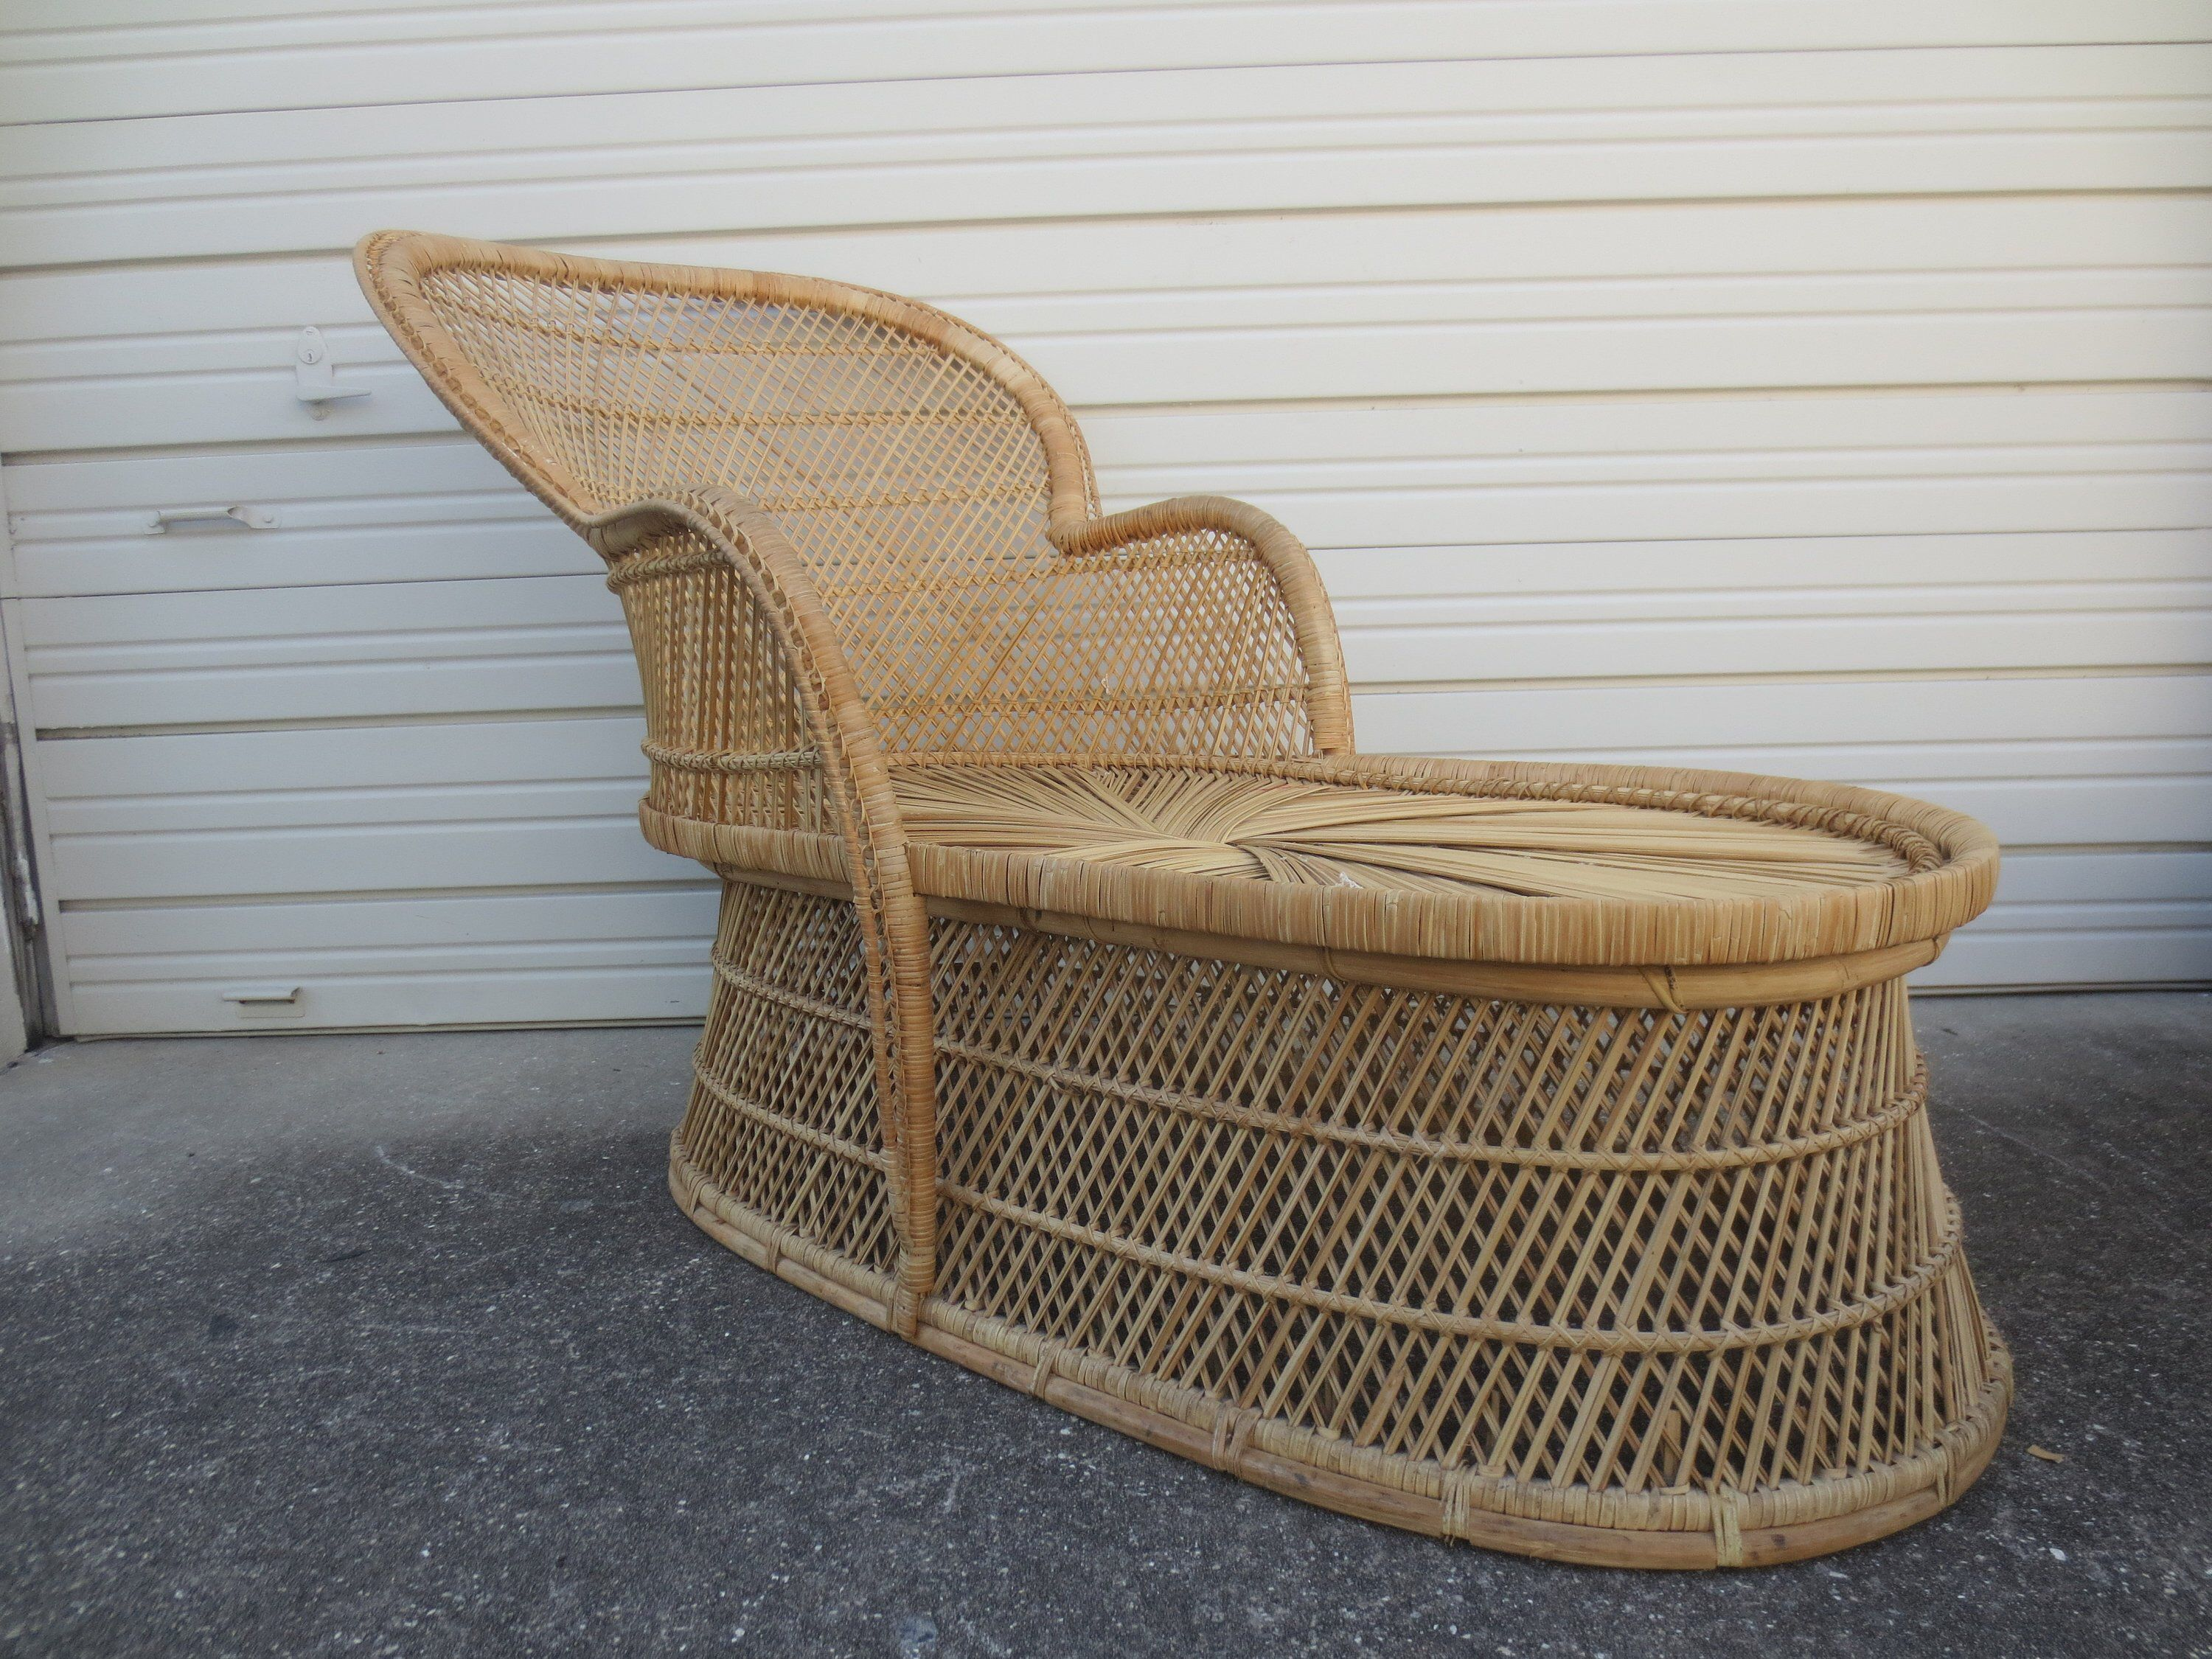 Wicker Peacock Chaise Lounge Chair Vintage Rattan Hollywood